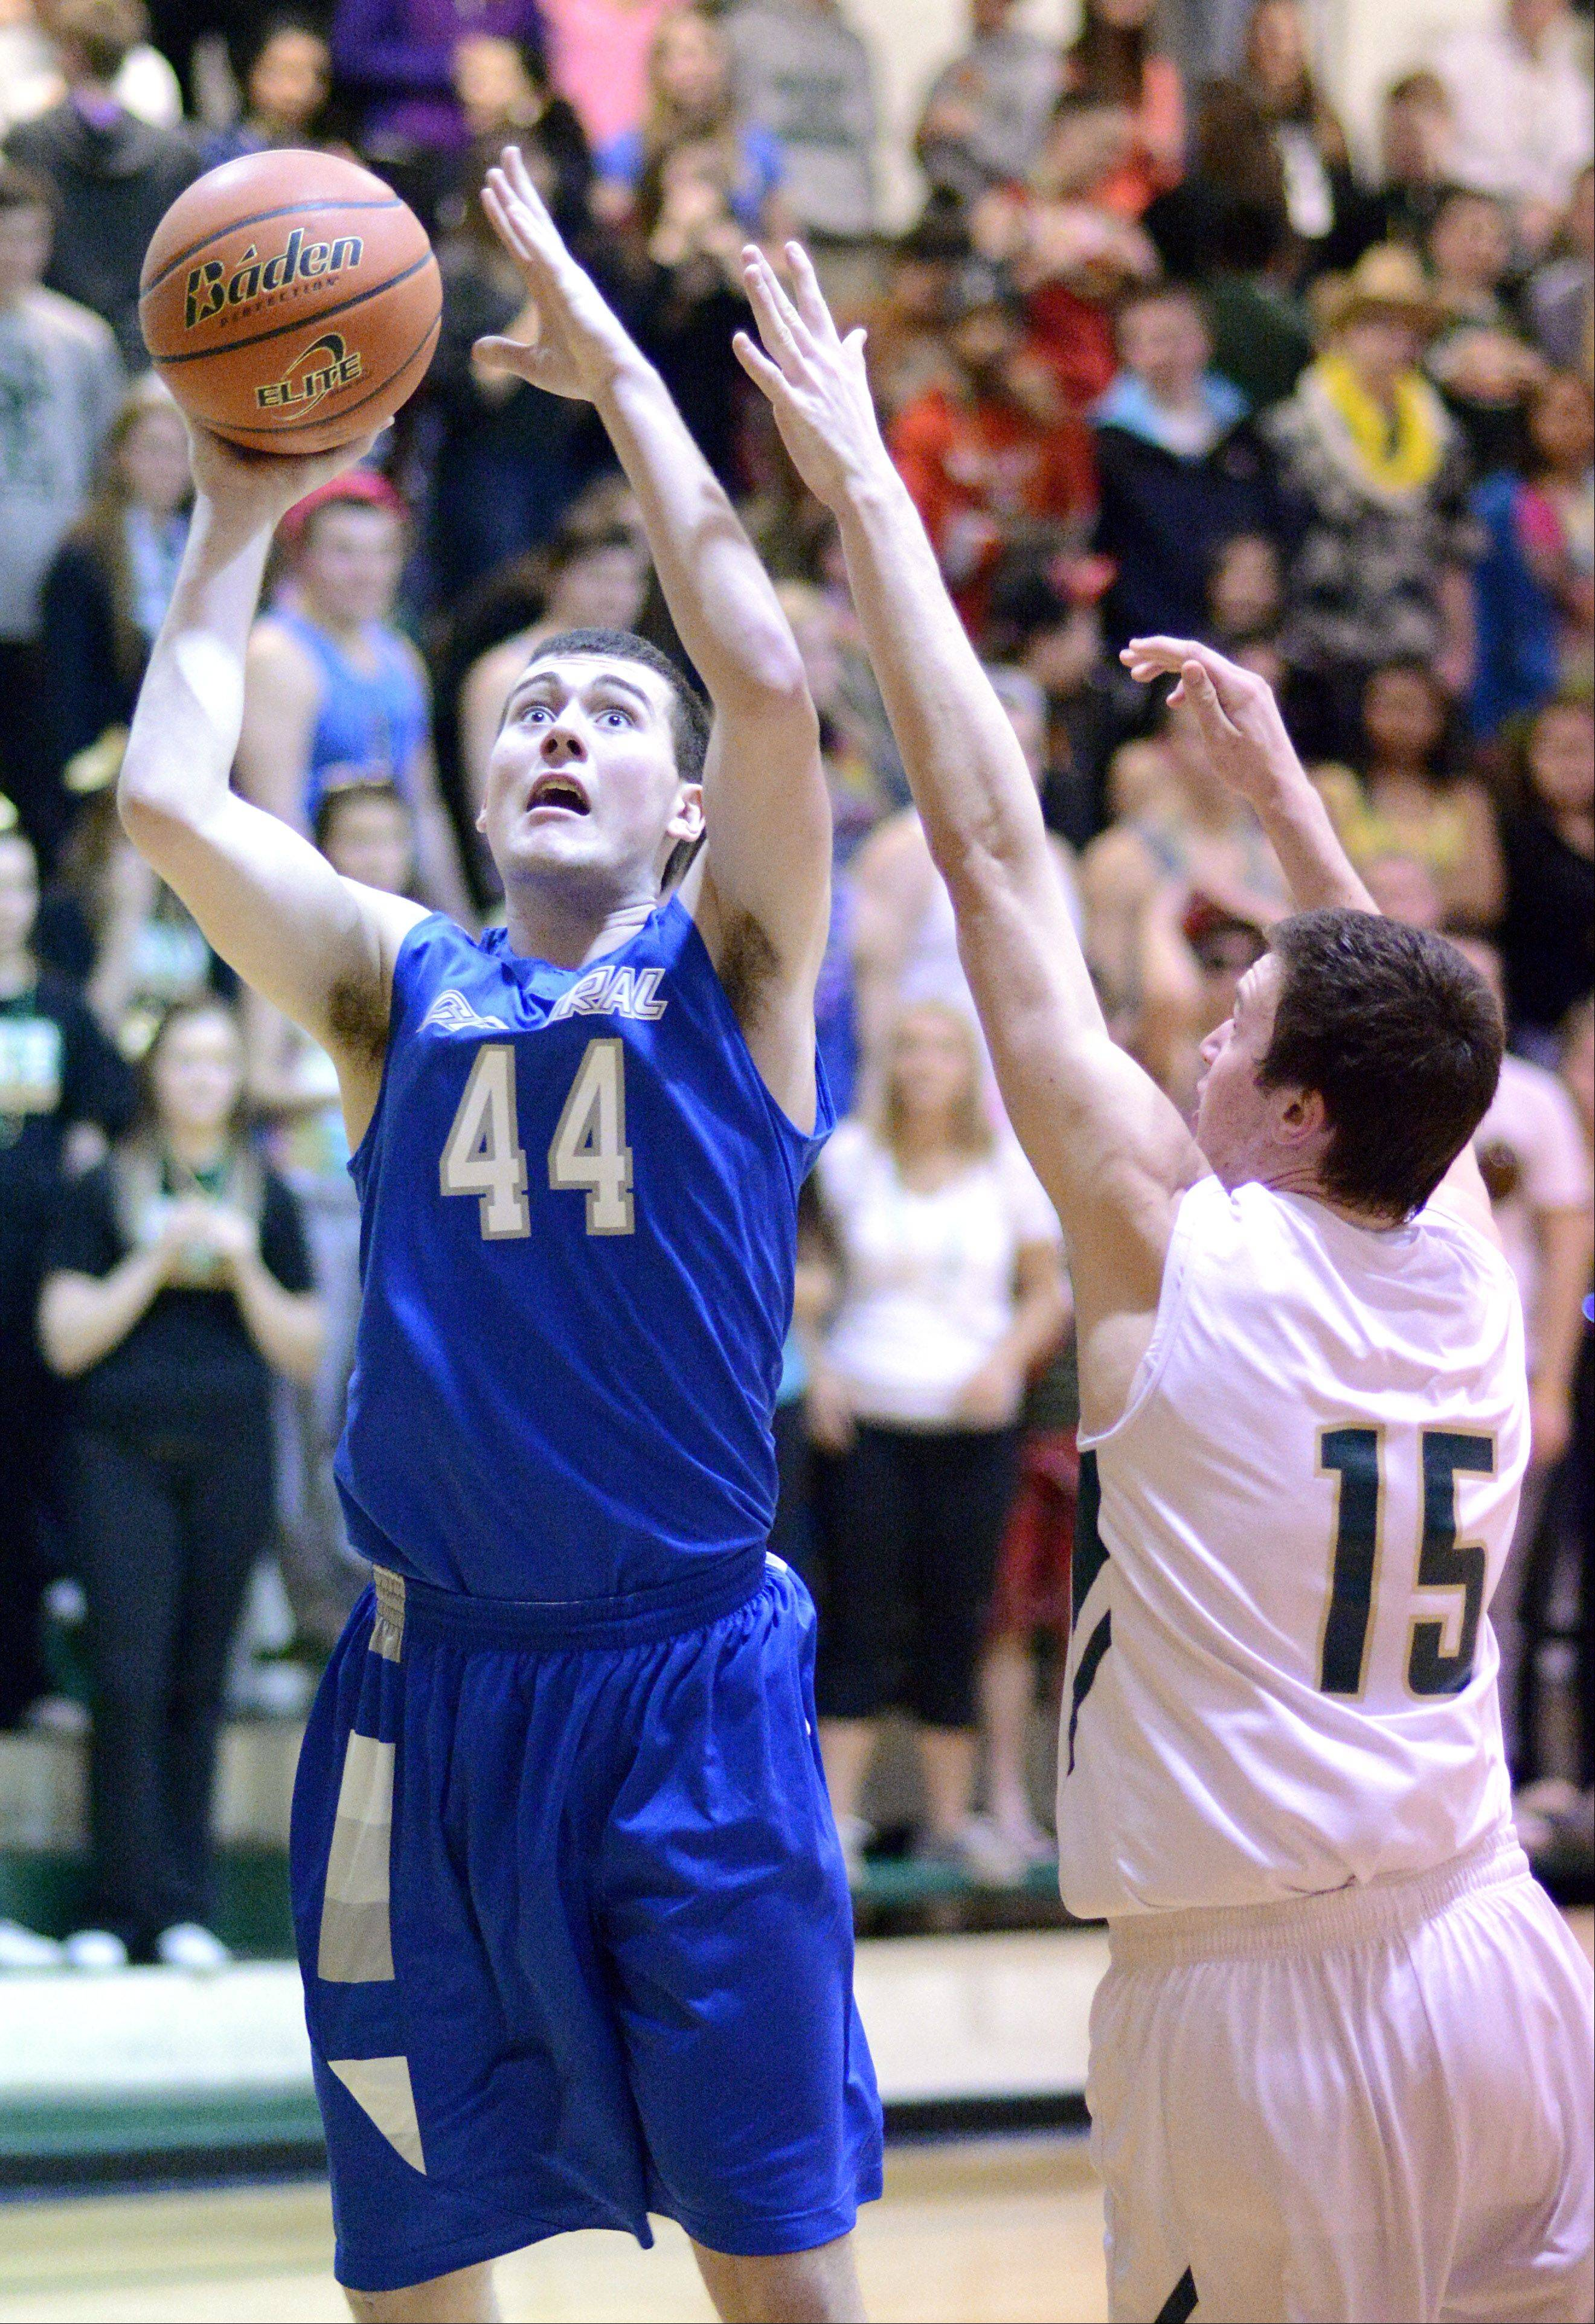 Burlington Central's Zach Berry shoots past a block attempt by St. Edward's Nick Duffy in the third quarter on Friday at St. Edward.